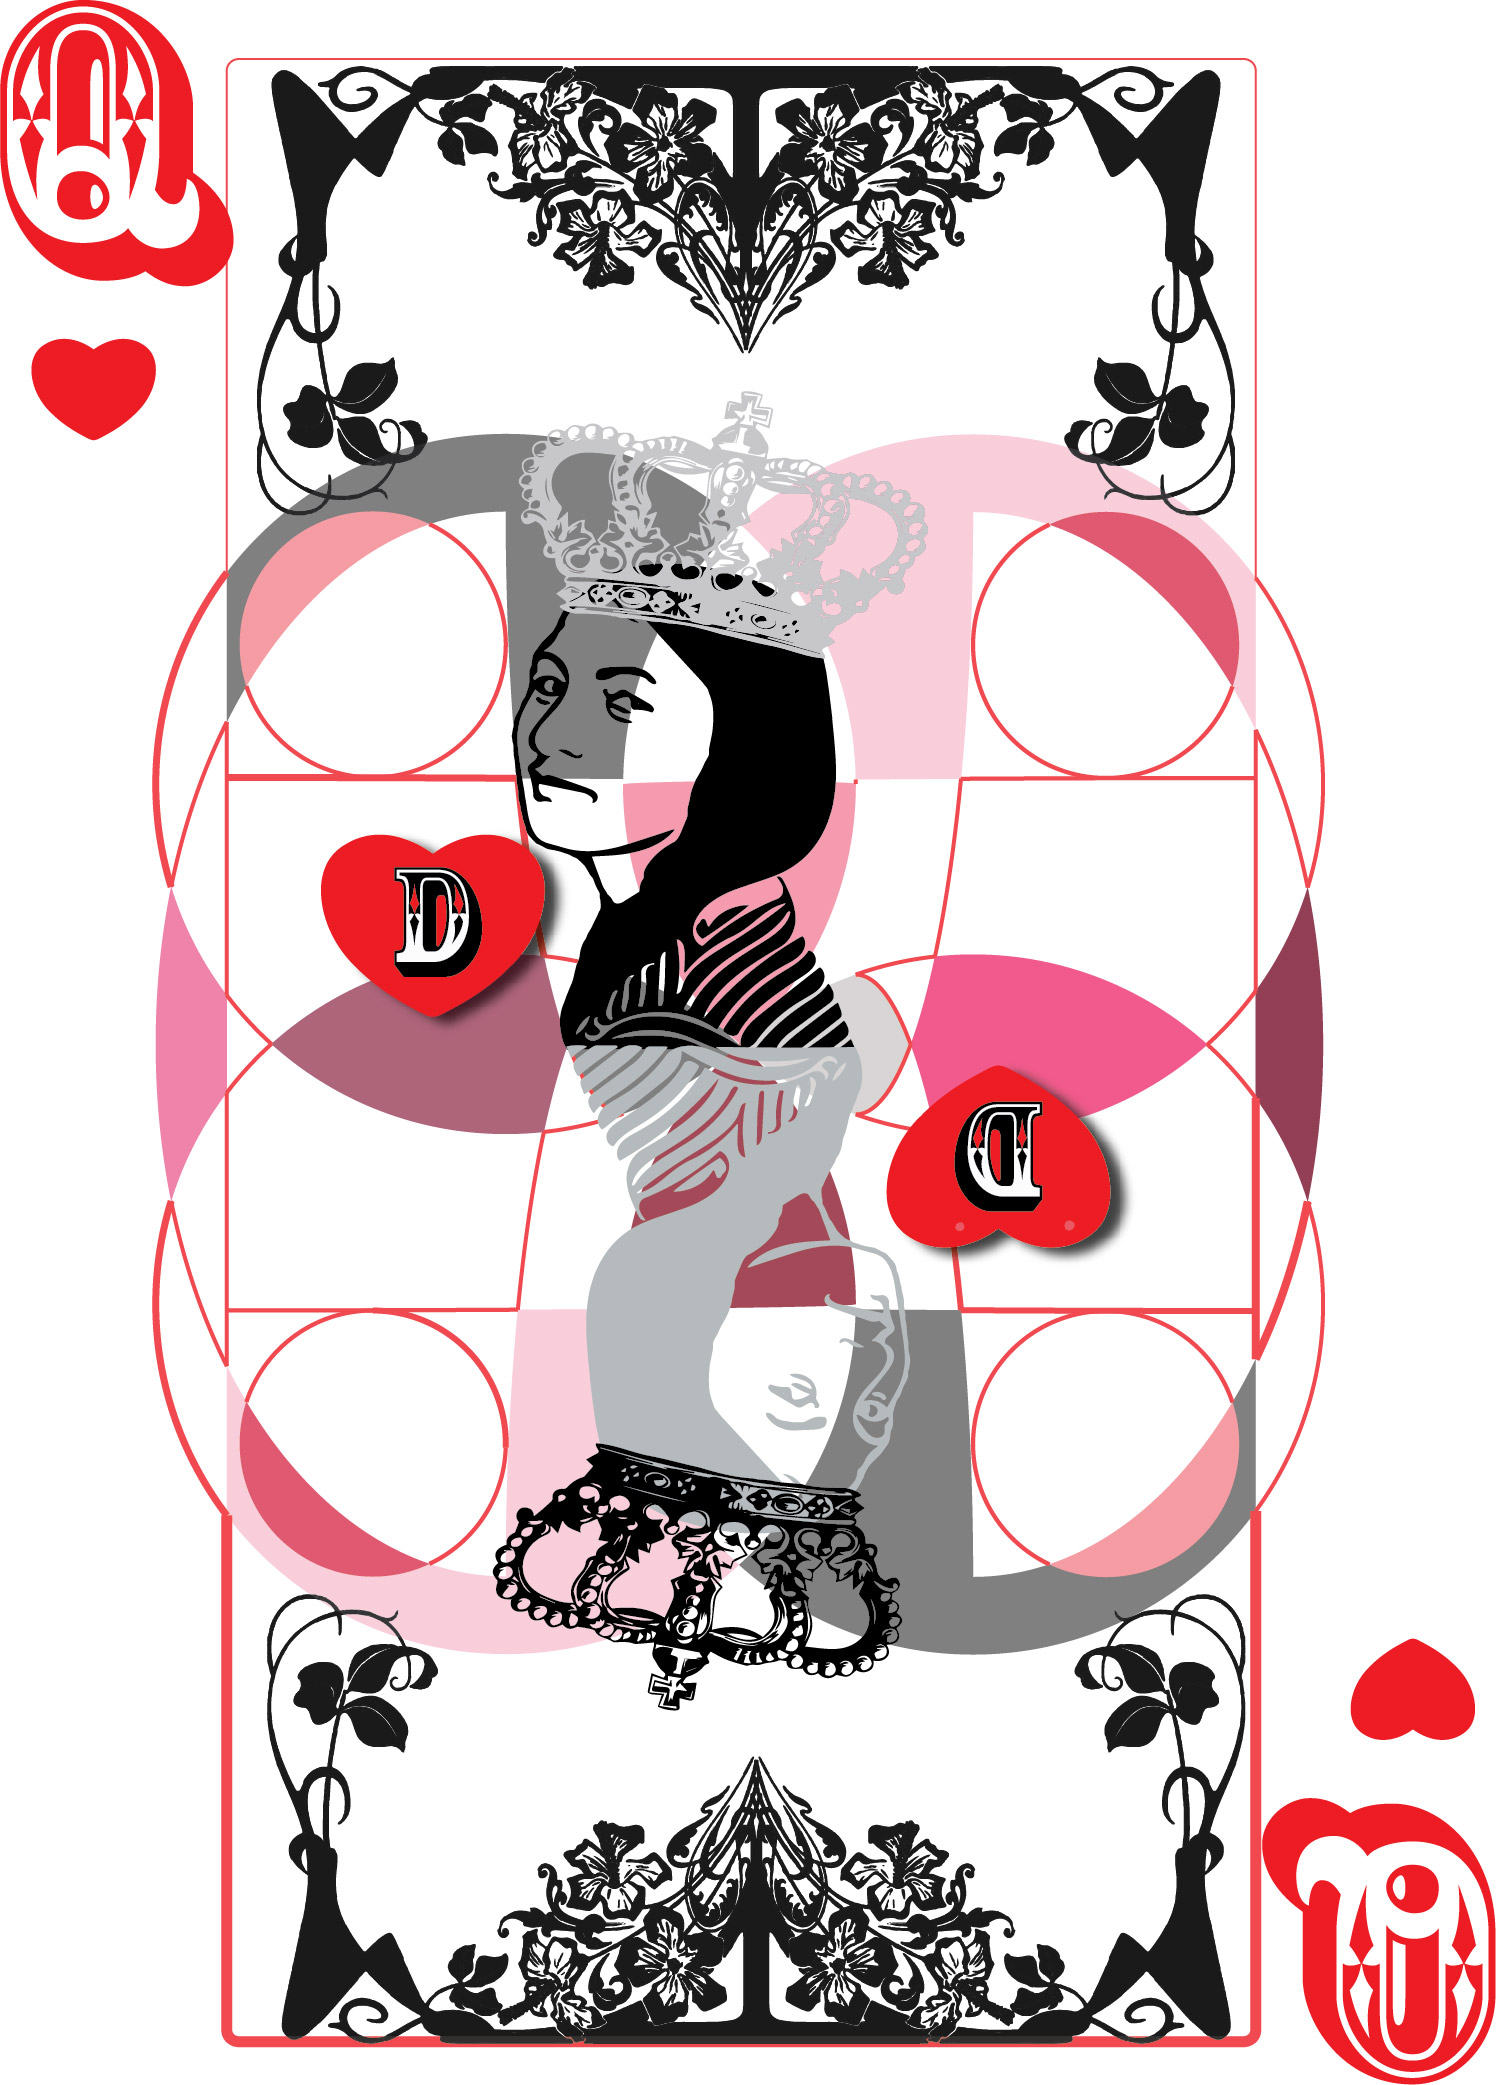 QUEEN of Heart4.jpg